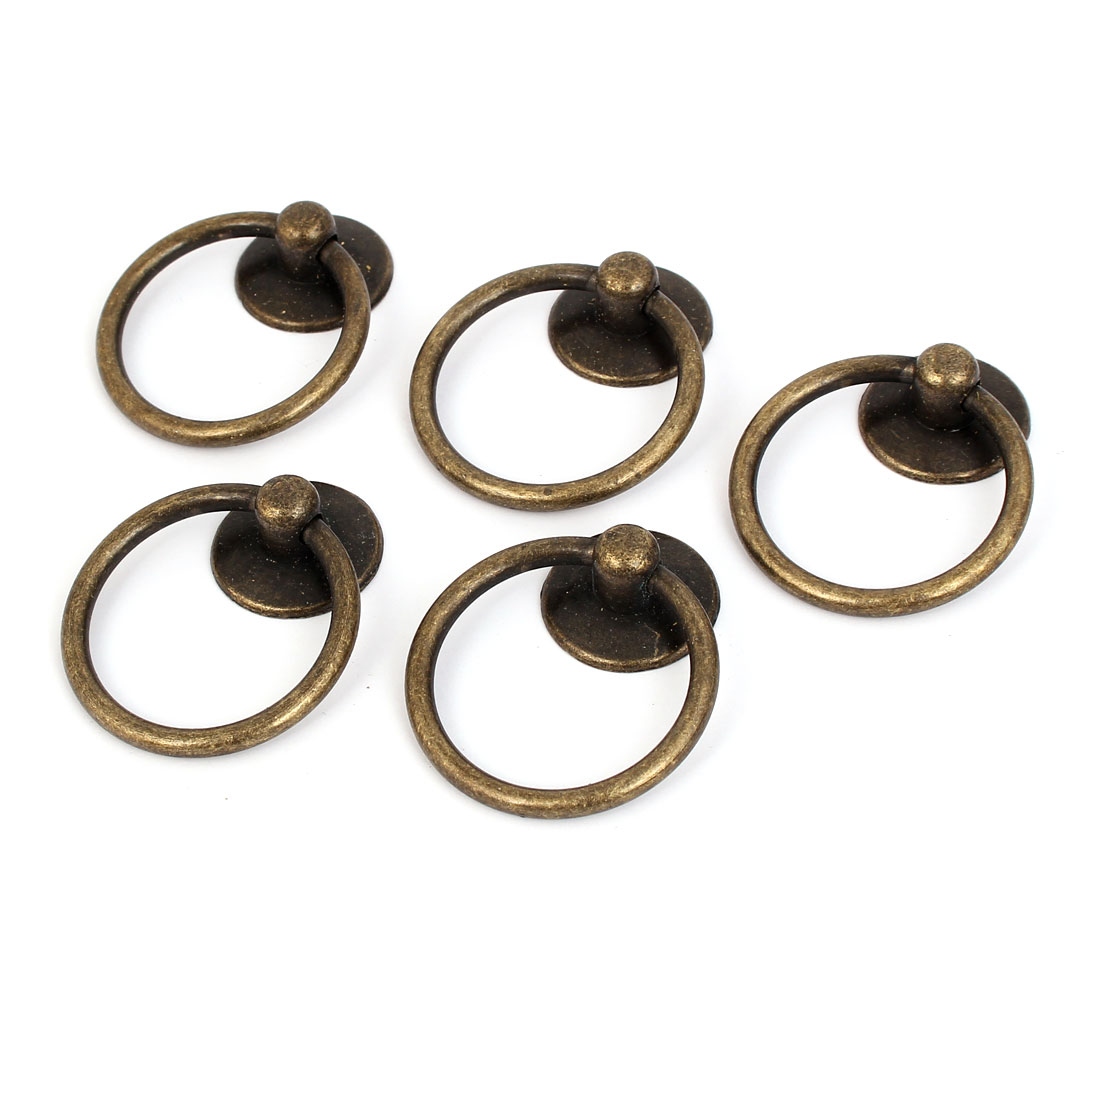 Cupboard Cabinet Drawer Dresser Rings Pulls Knob Bronze Tone 5pcs